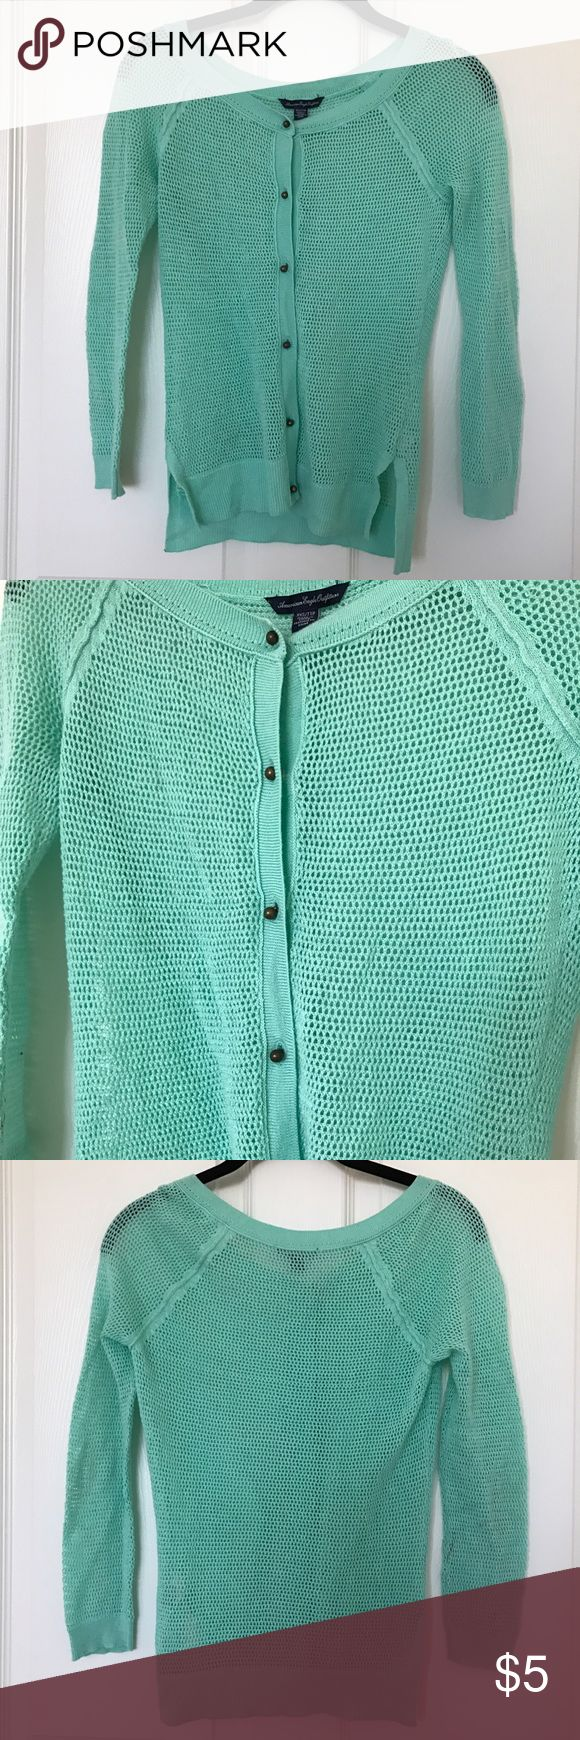 American Eagle Teal Cardigan Used. Has stain on back of left sleeve and small stain on front near the top (see last photo). American Eagle Outfitters Sweaters Cardigans